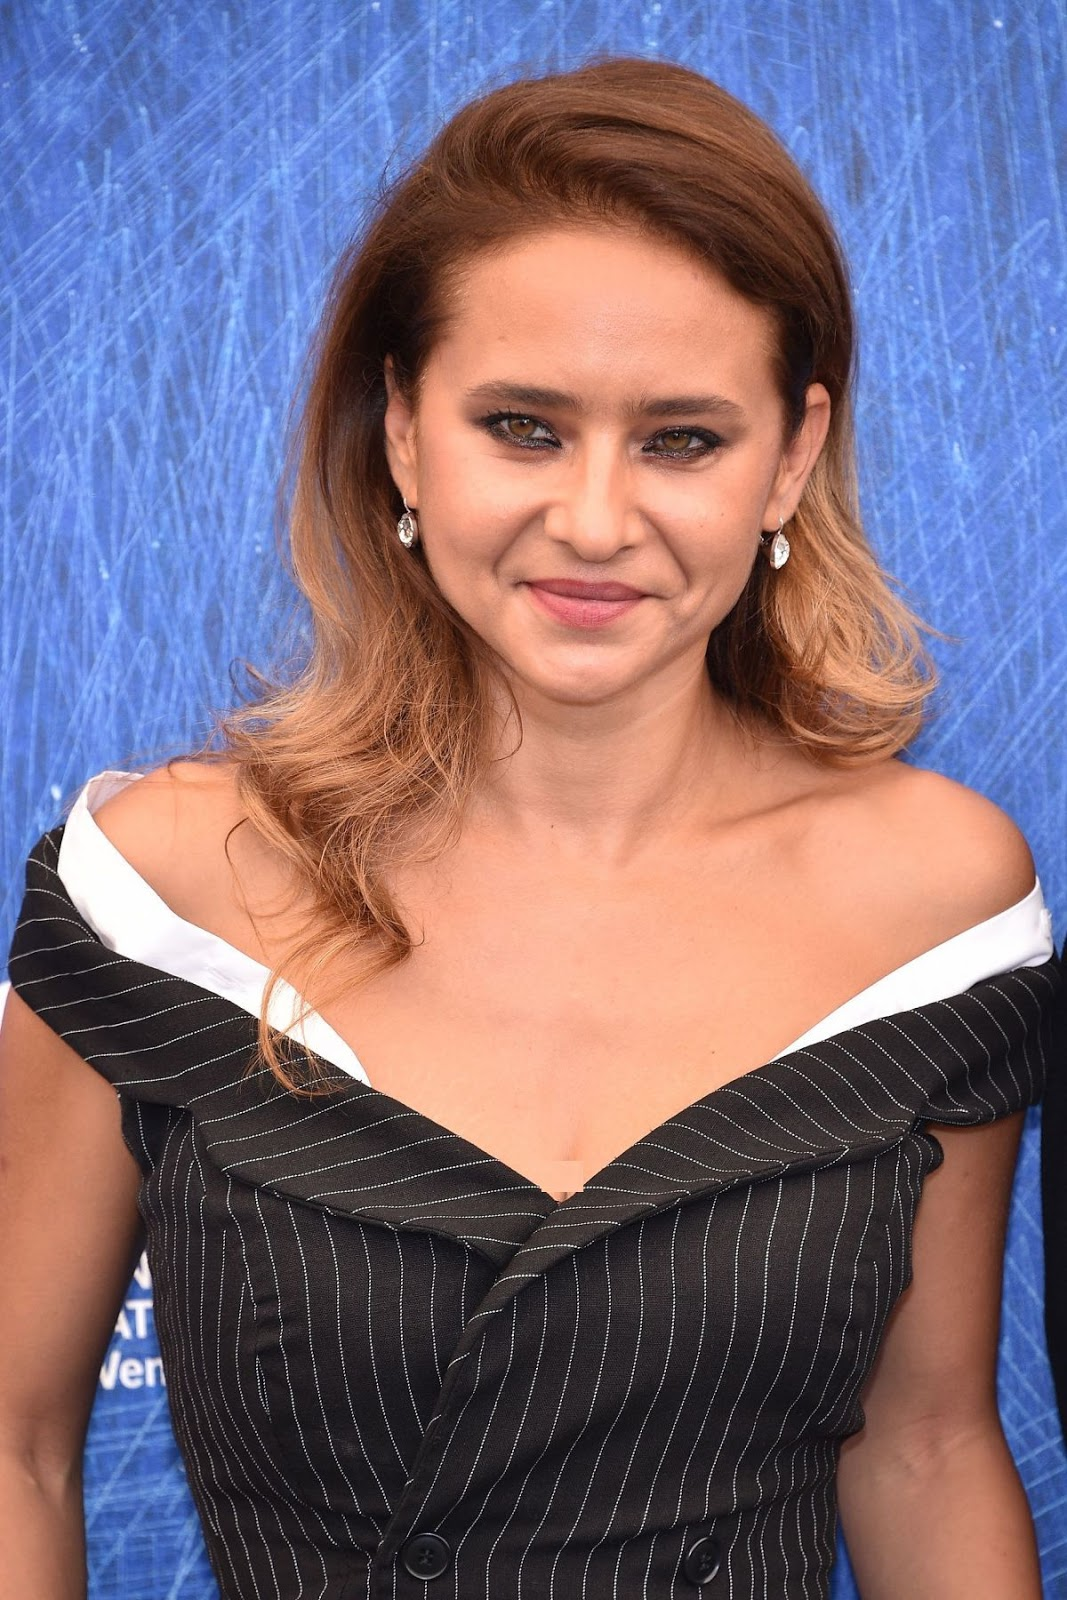 HQ Photos of Nelly Karim at 2016 73rd Venice Film Festival Jury Photocall in Venice